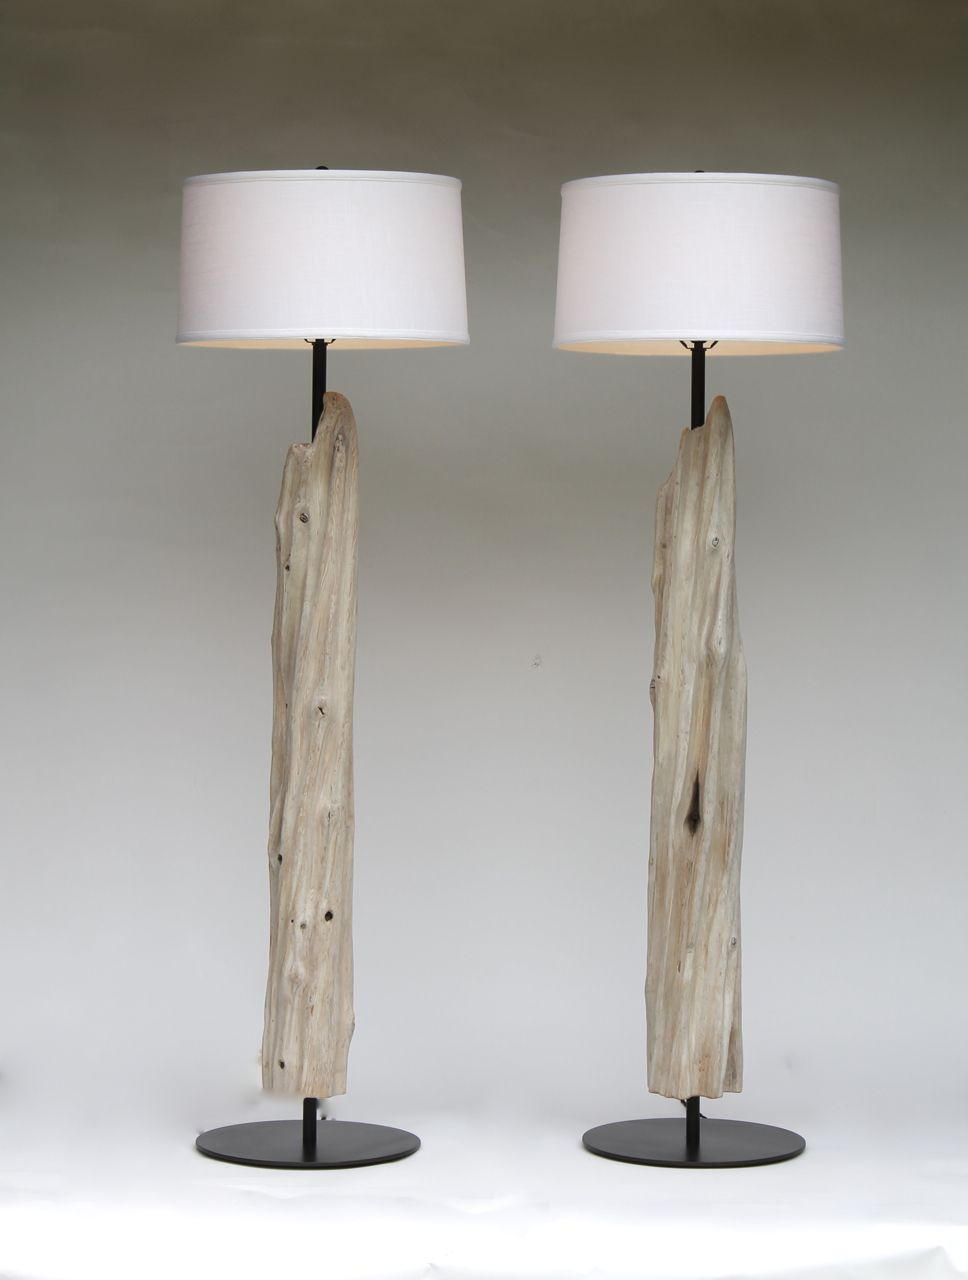 floor lighting viyet abc carpet lig and front lamp home driftwood designer furniture